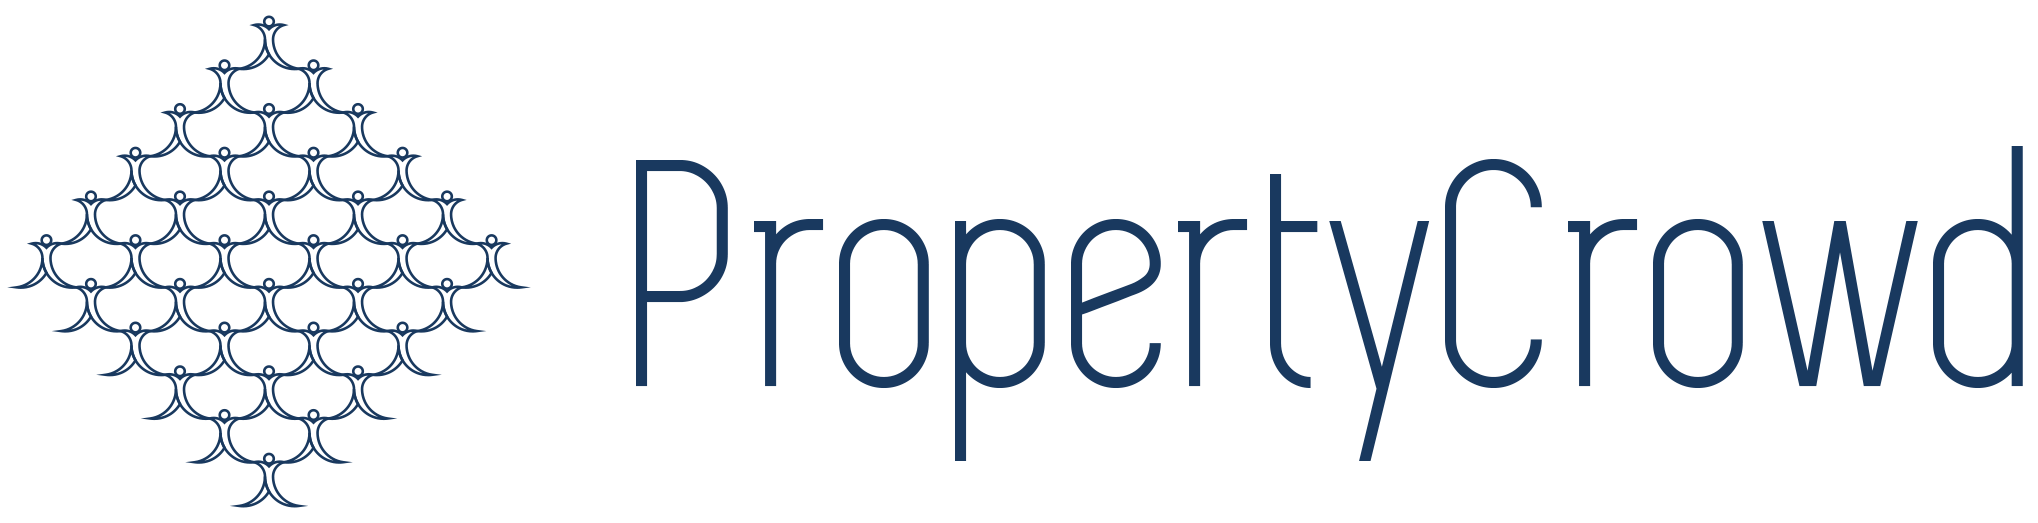 Property Crowd Logo